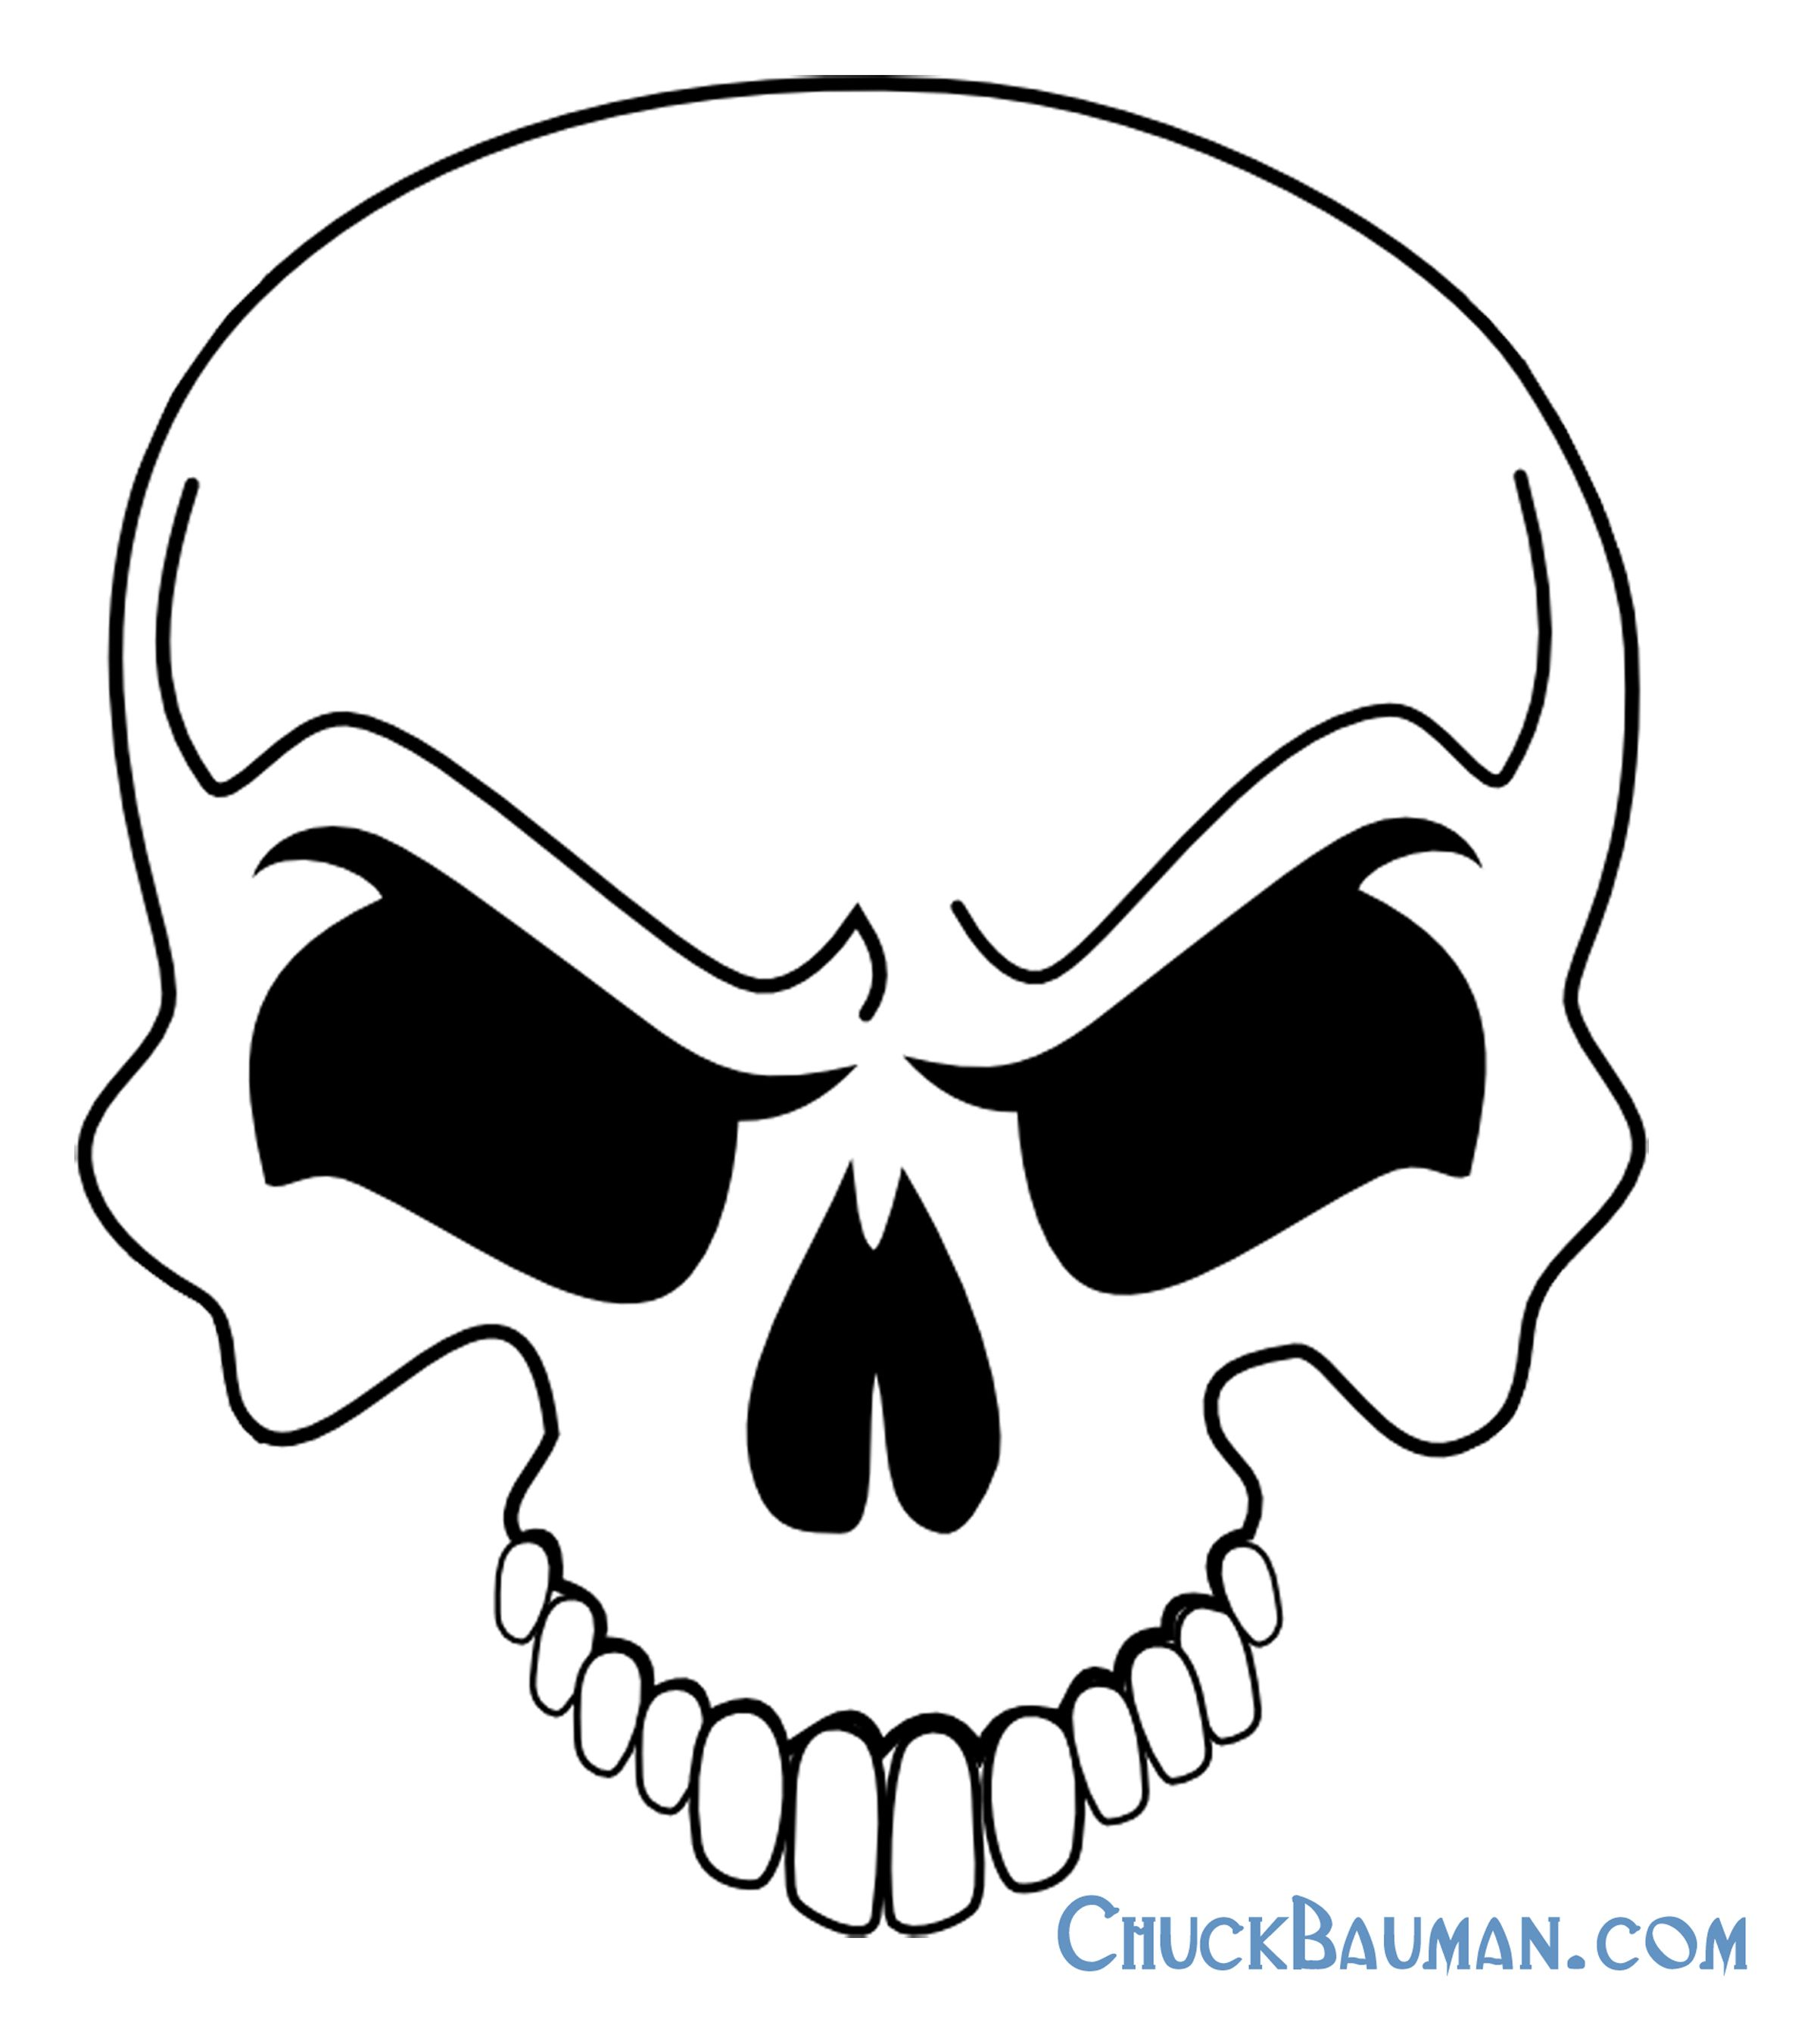 Free skull tattoo designs to print - Skulls Airbrushing Free